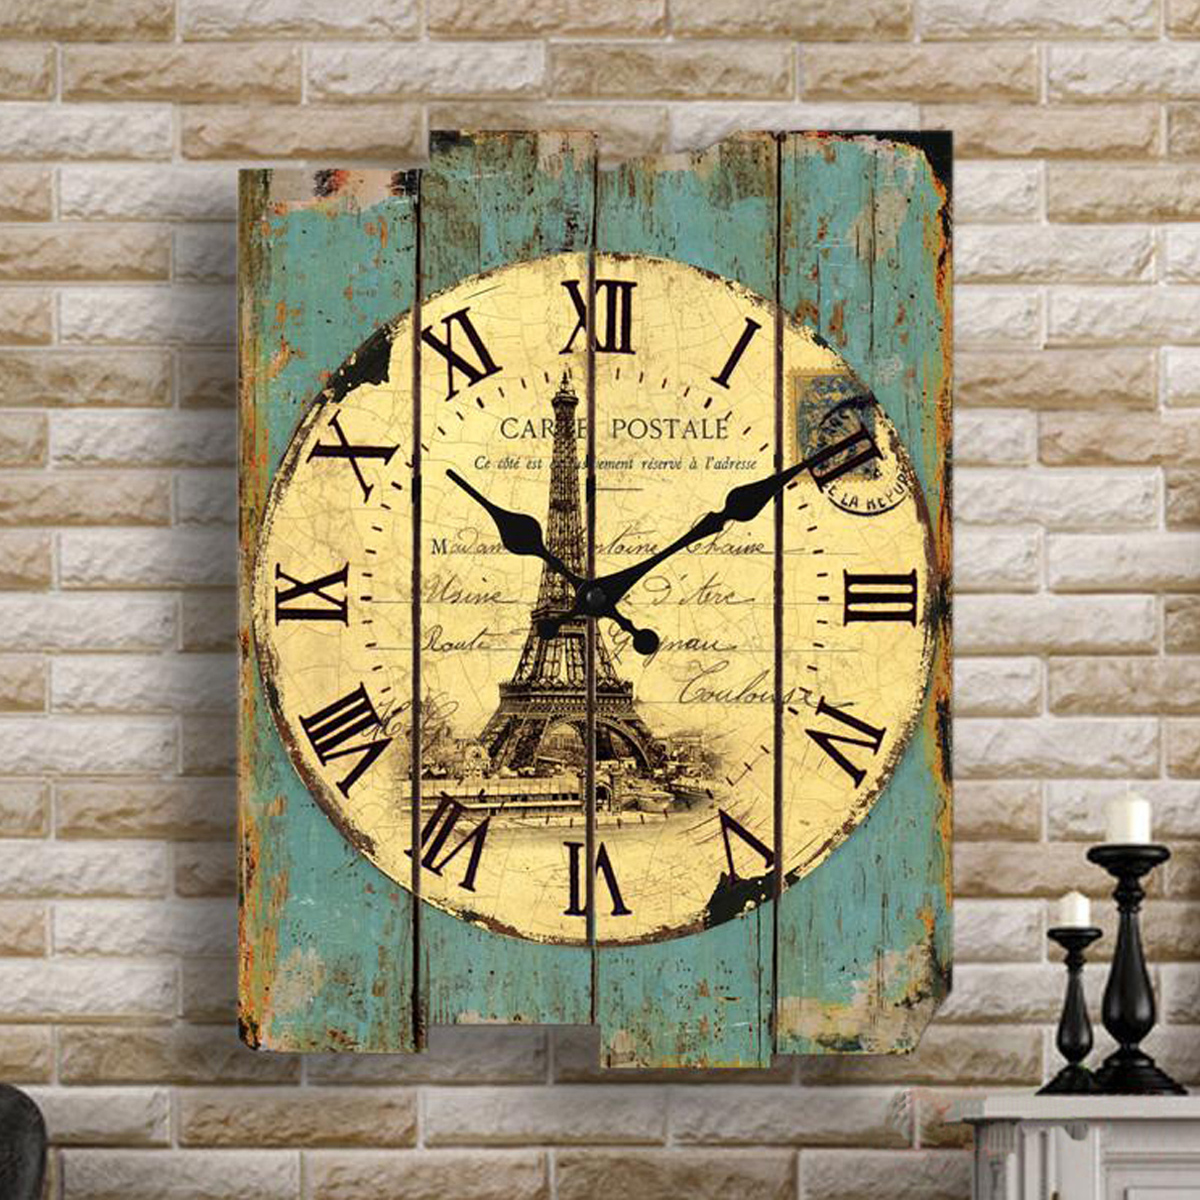 Green / Gray / Red Retro Vintage Wooden Wall Clock Home Coffee Shop Decorations